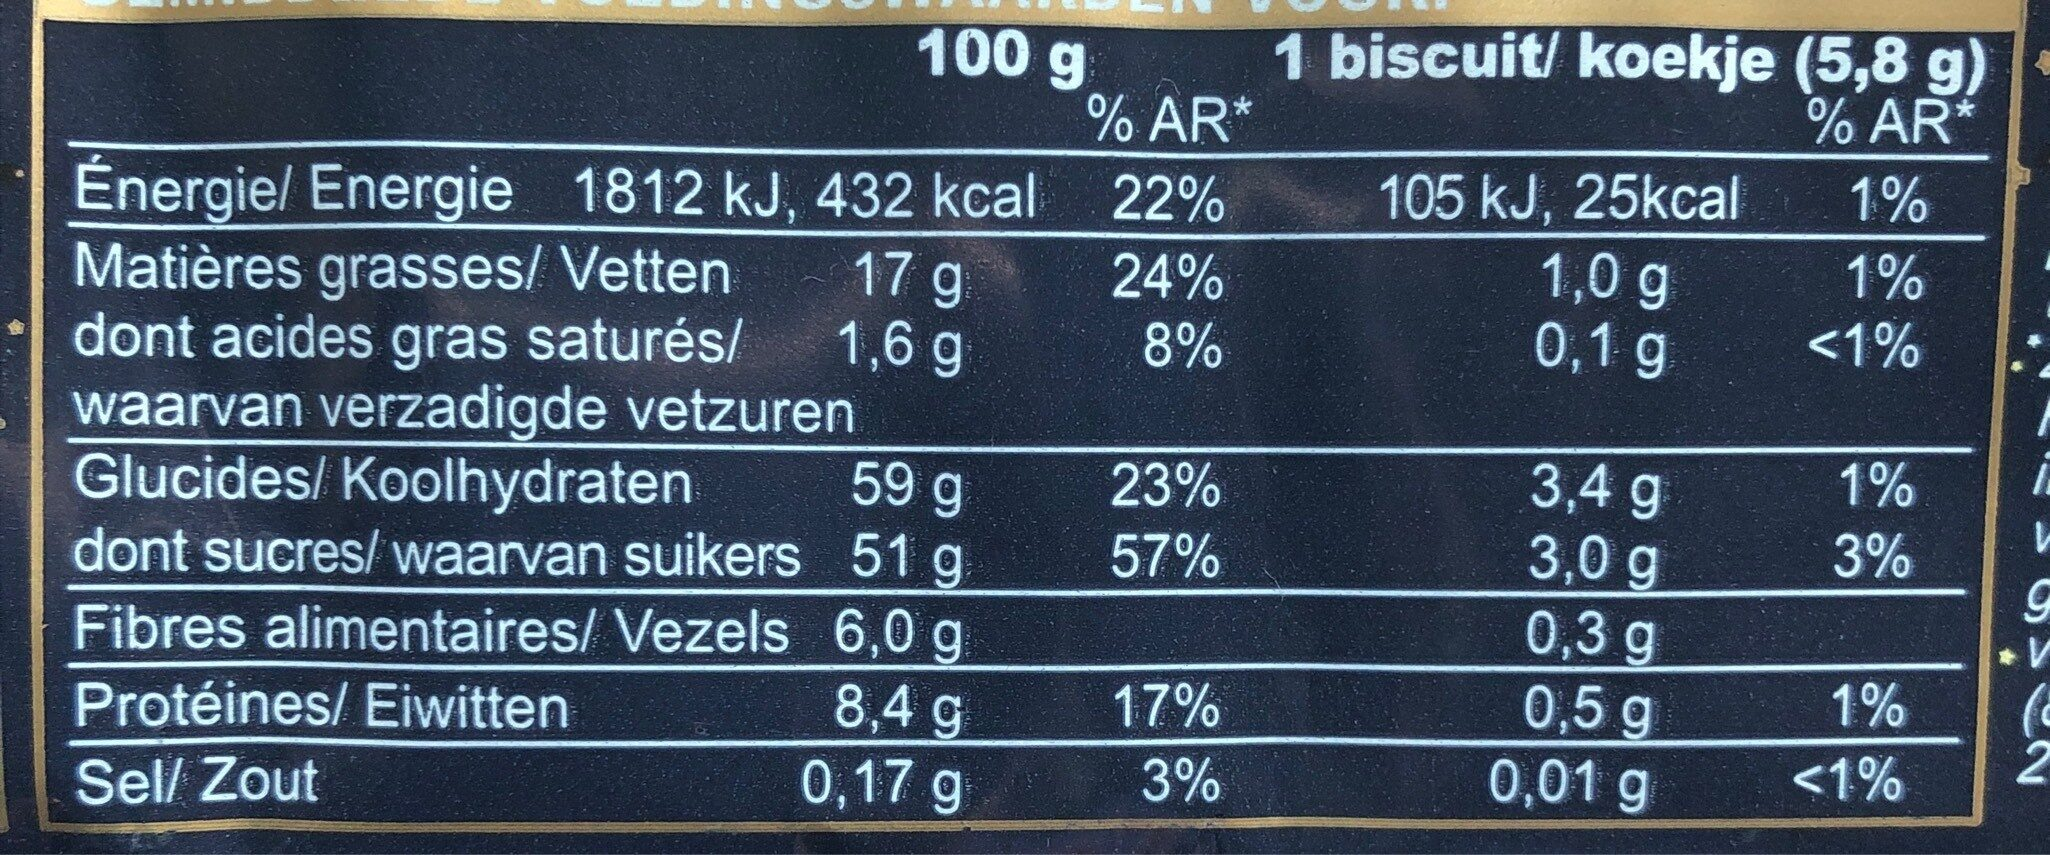 Biscuits Etoile Cannelle - Informations nutritionnelles - fr